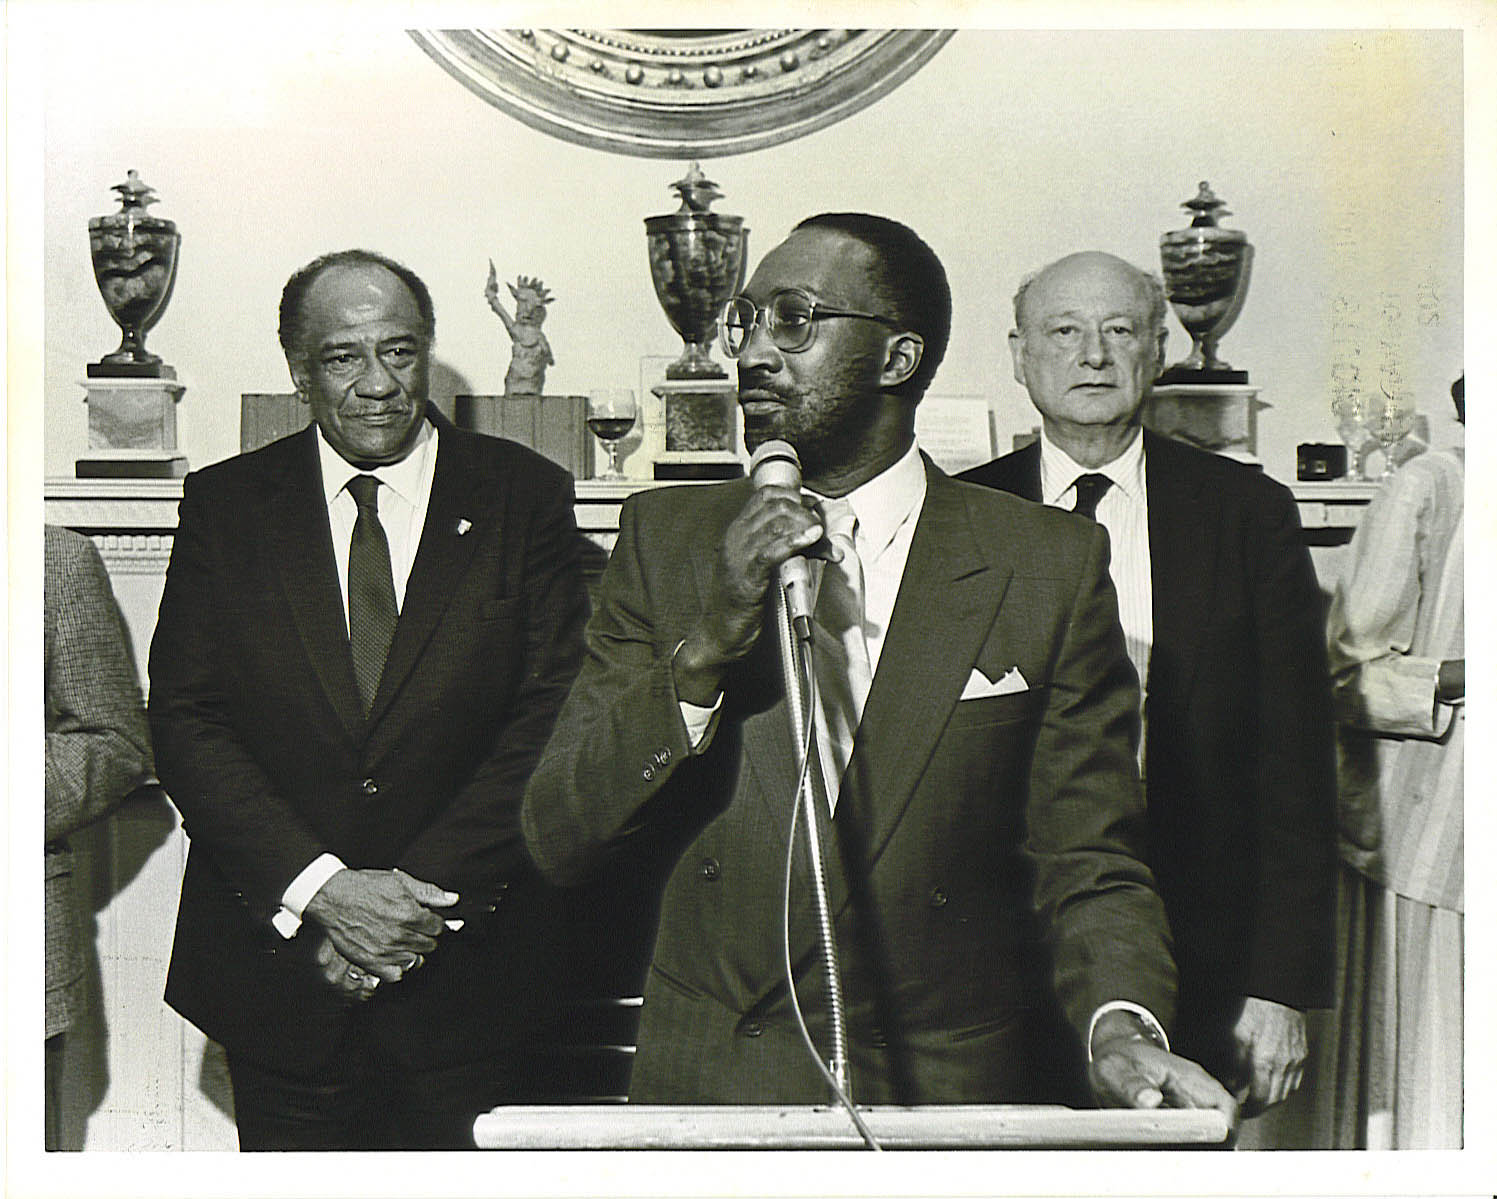 EARLY 1980'S:  Lloyd Williams (center) speaks as then NYPDCommissioner Benjamin Ward (left) and then Mayor Ed Koch listen intently.